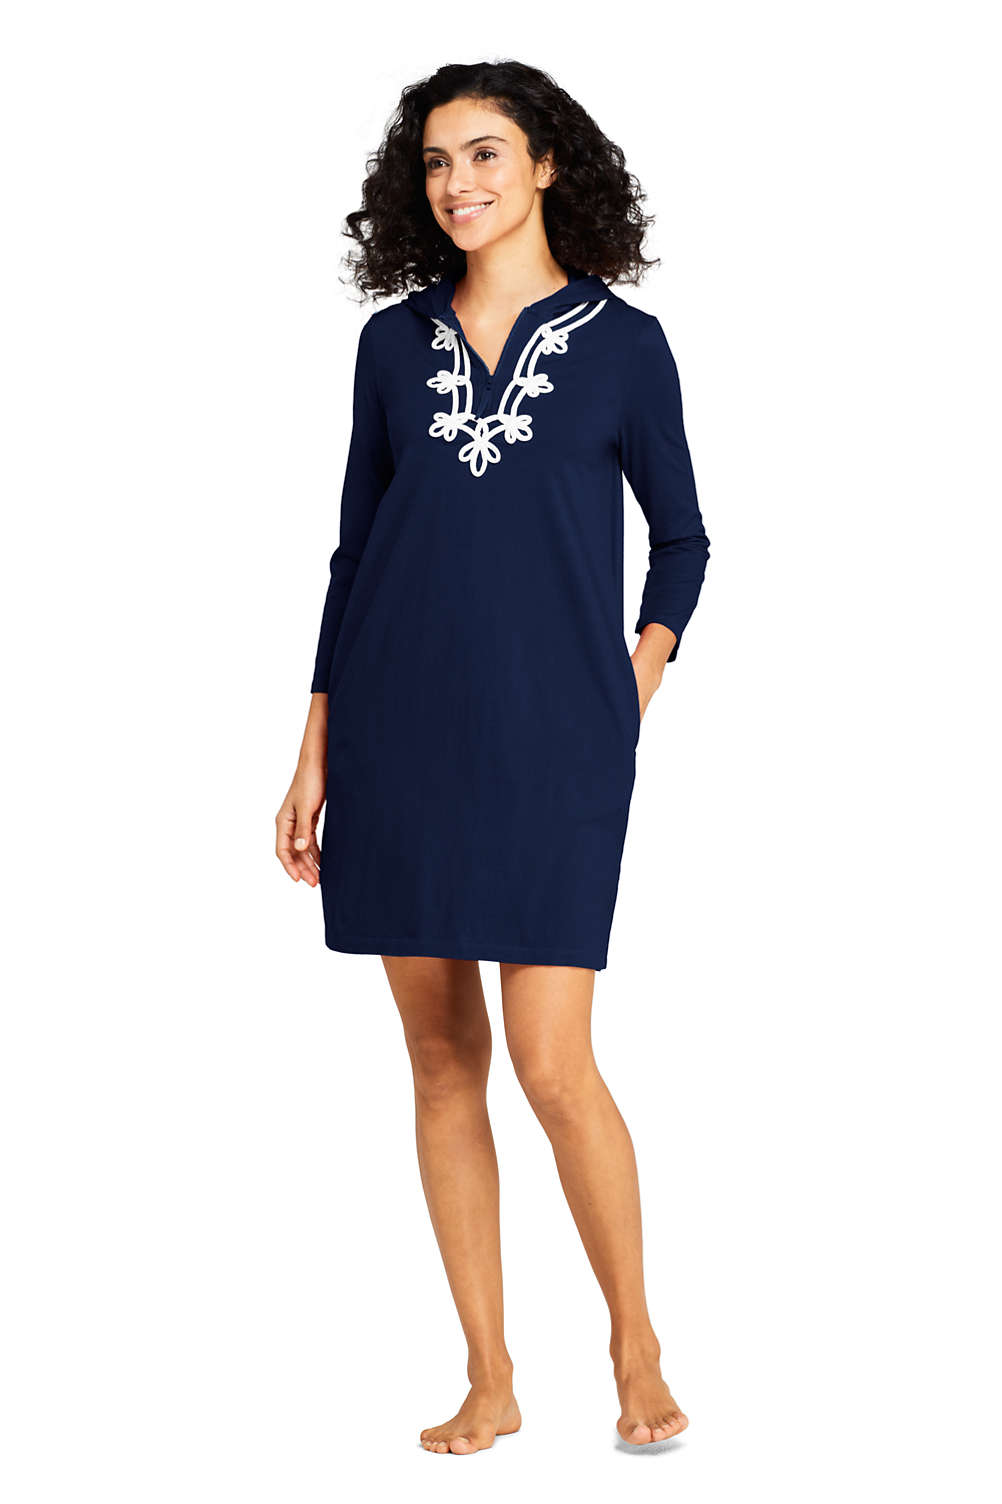 dd11712bfb1 Women's Cotton Jersey Embelished Hooded Half Zip Swim Cover-up from Lands'  End